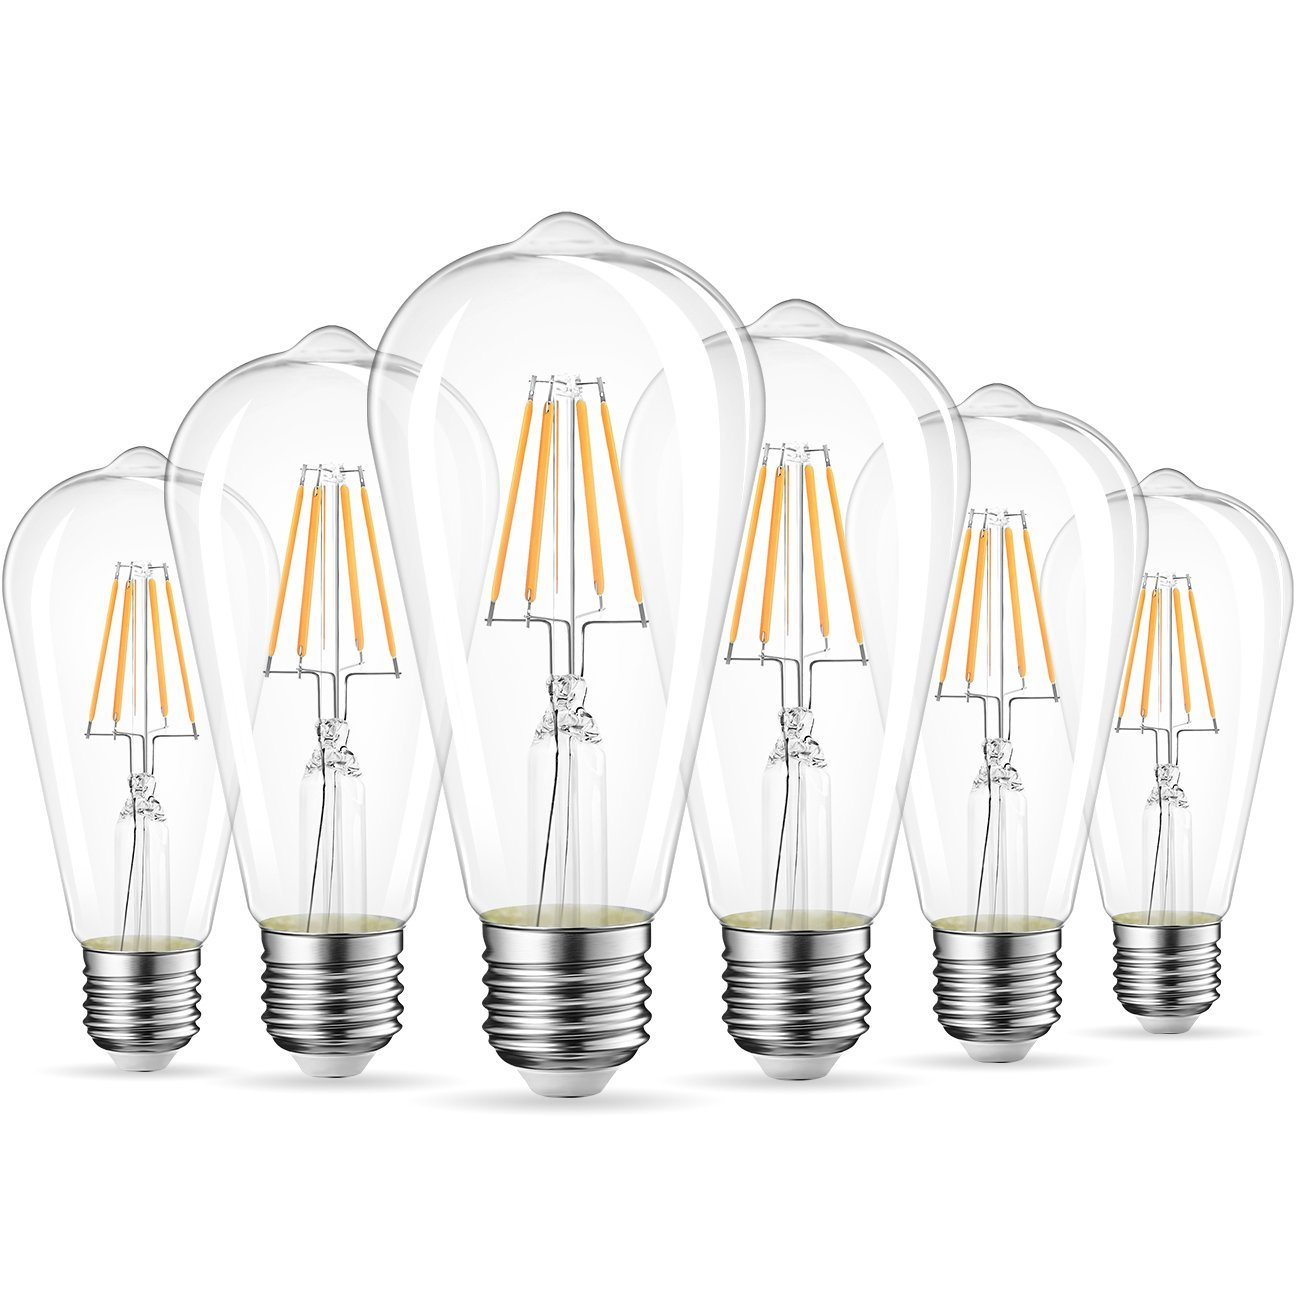 ST64 B22 40W Dimmable Vintage Filament Light Lamp Bulb Squirrel Cage